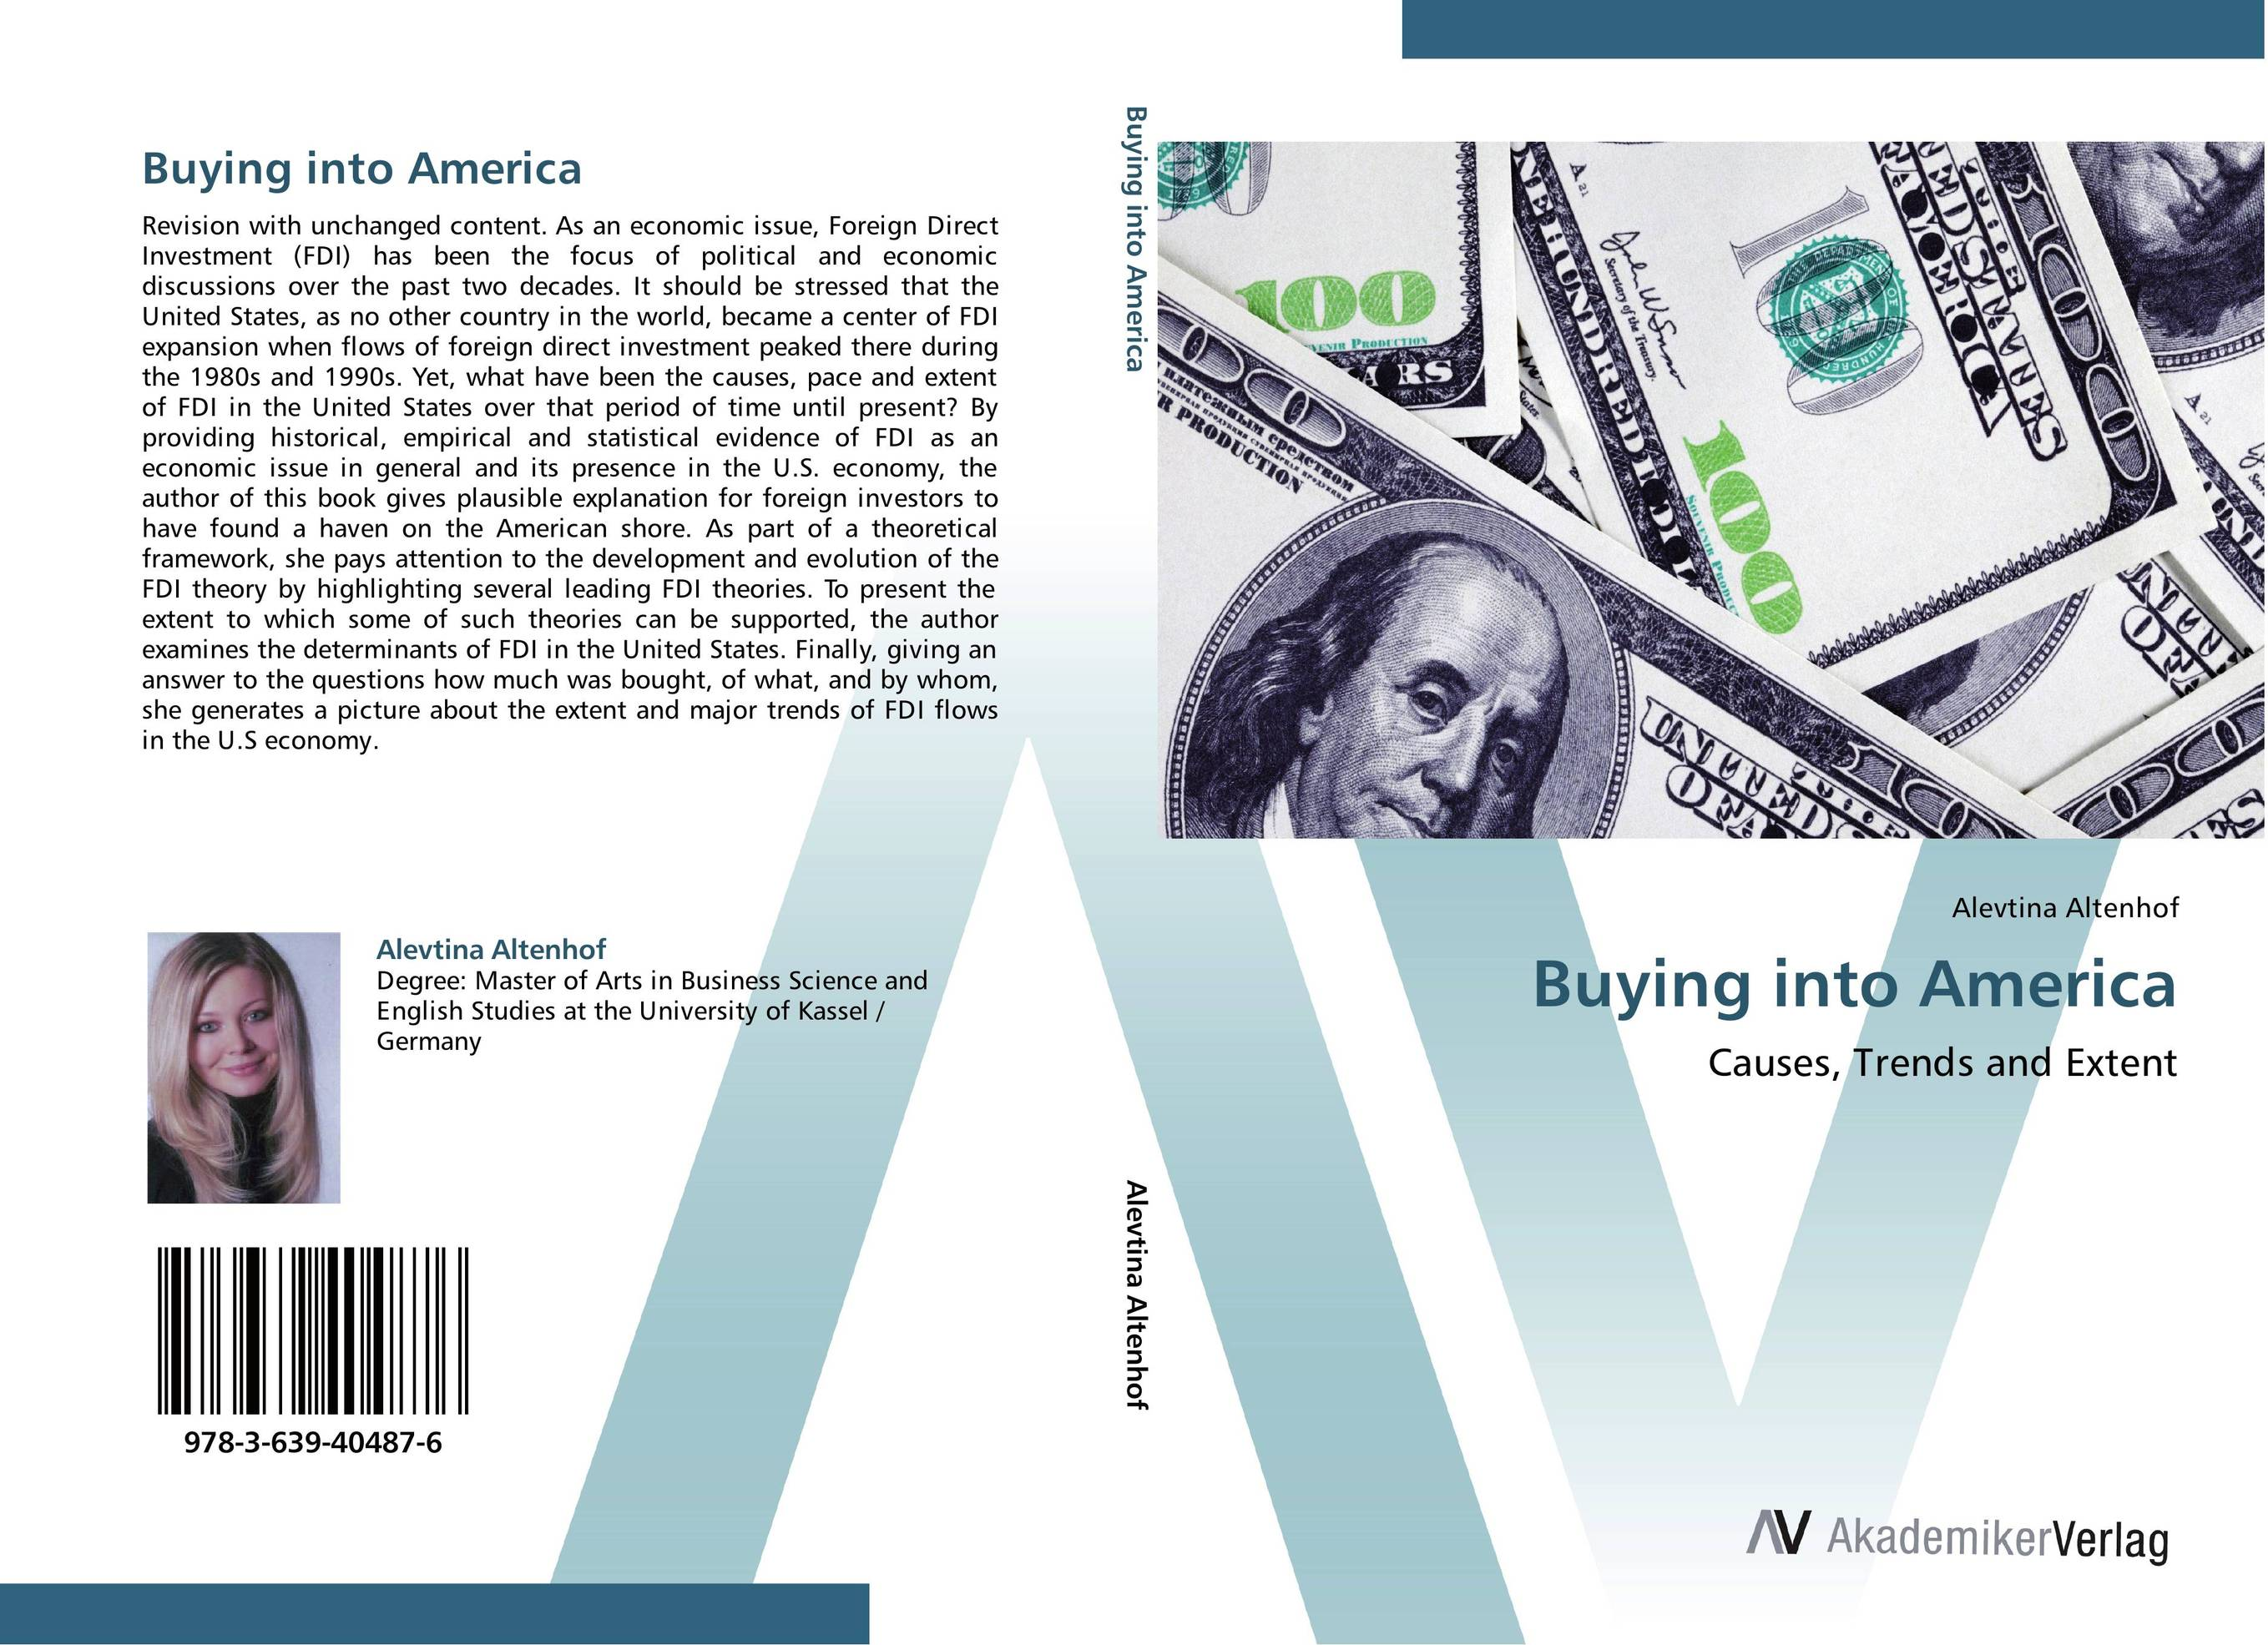 Buying into America bibiana njogo fdi determinants in pre and deregulated nigerian economy